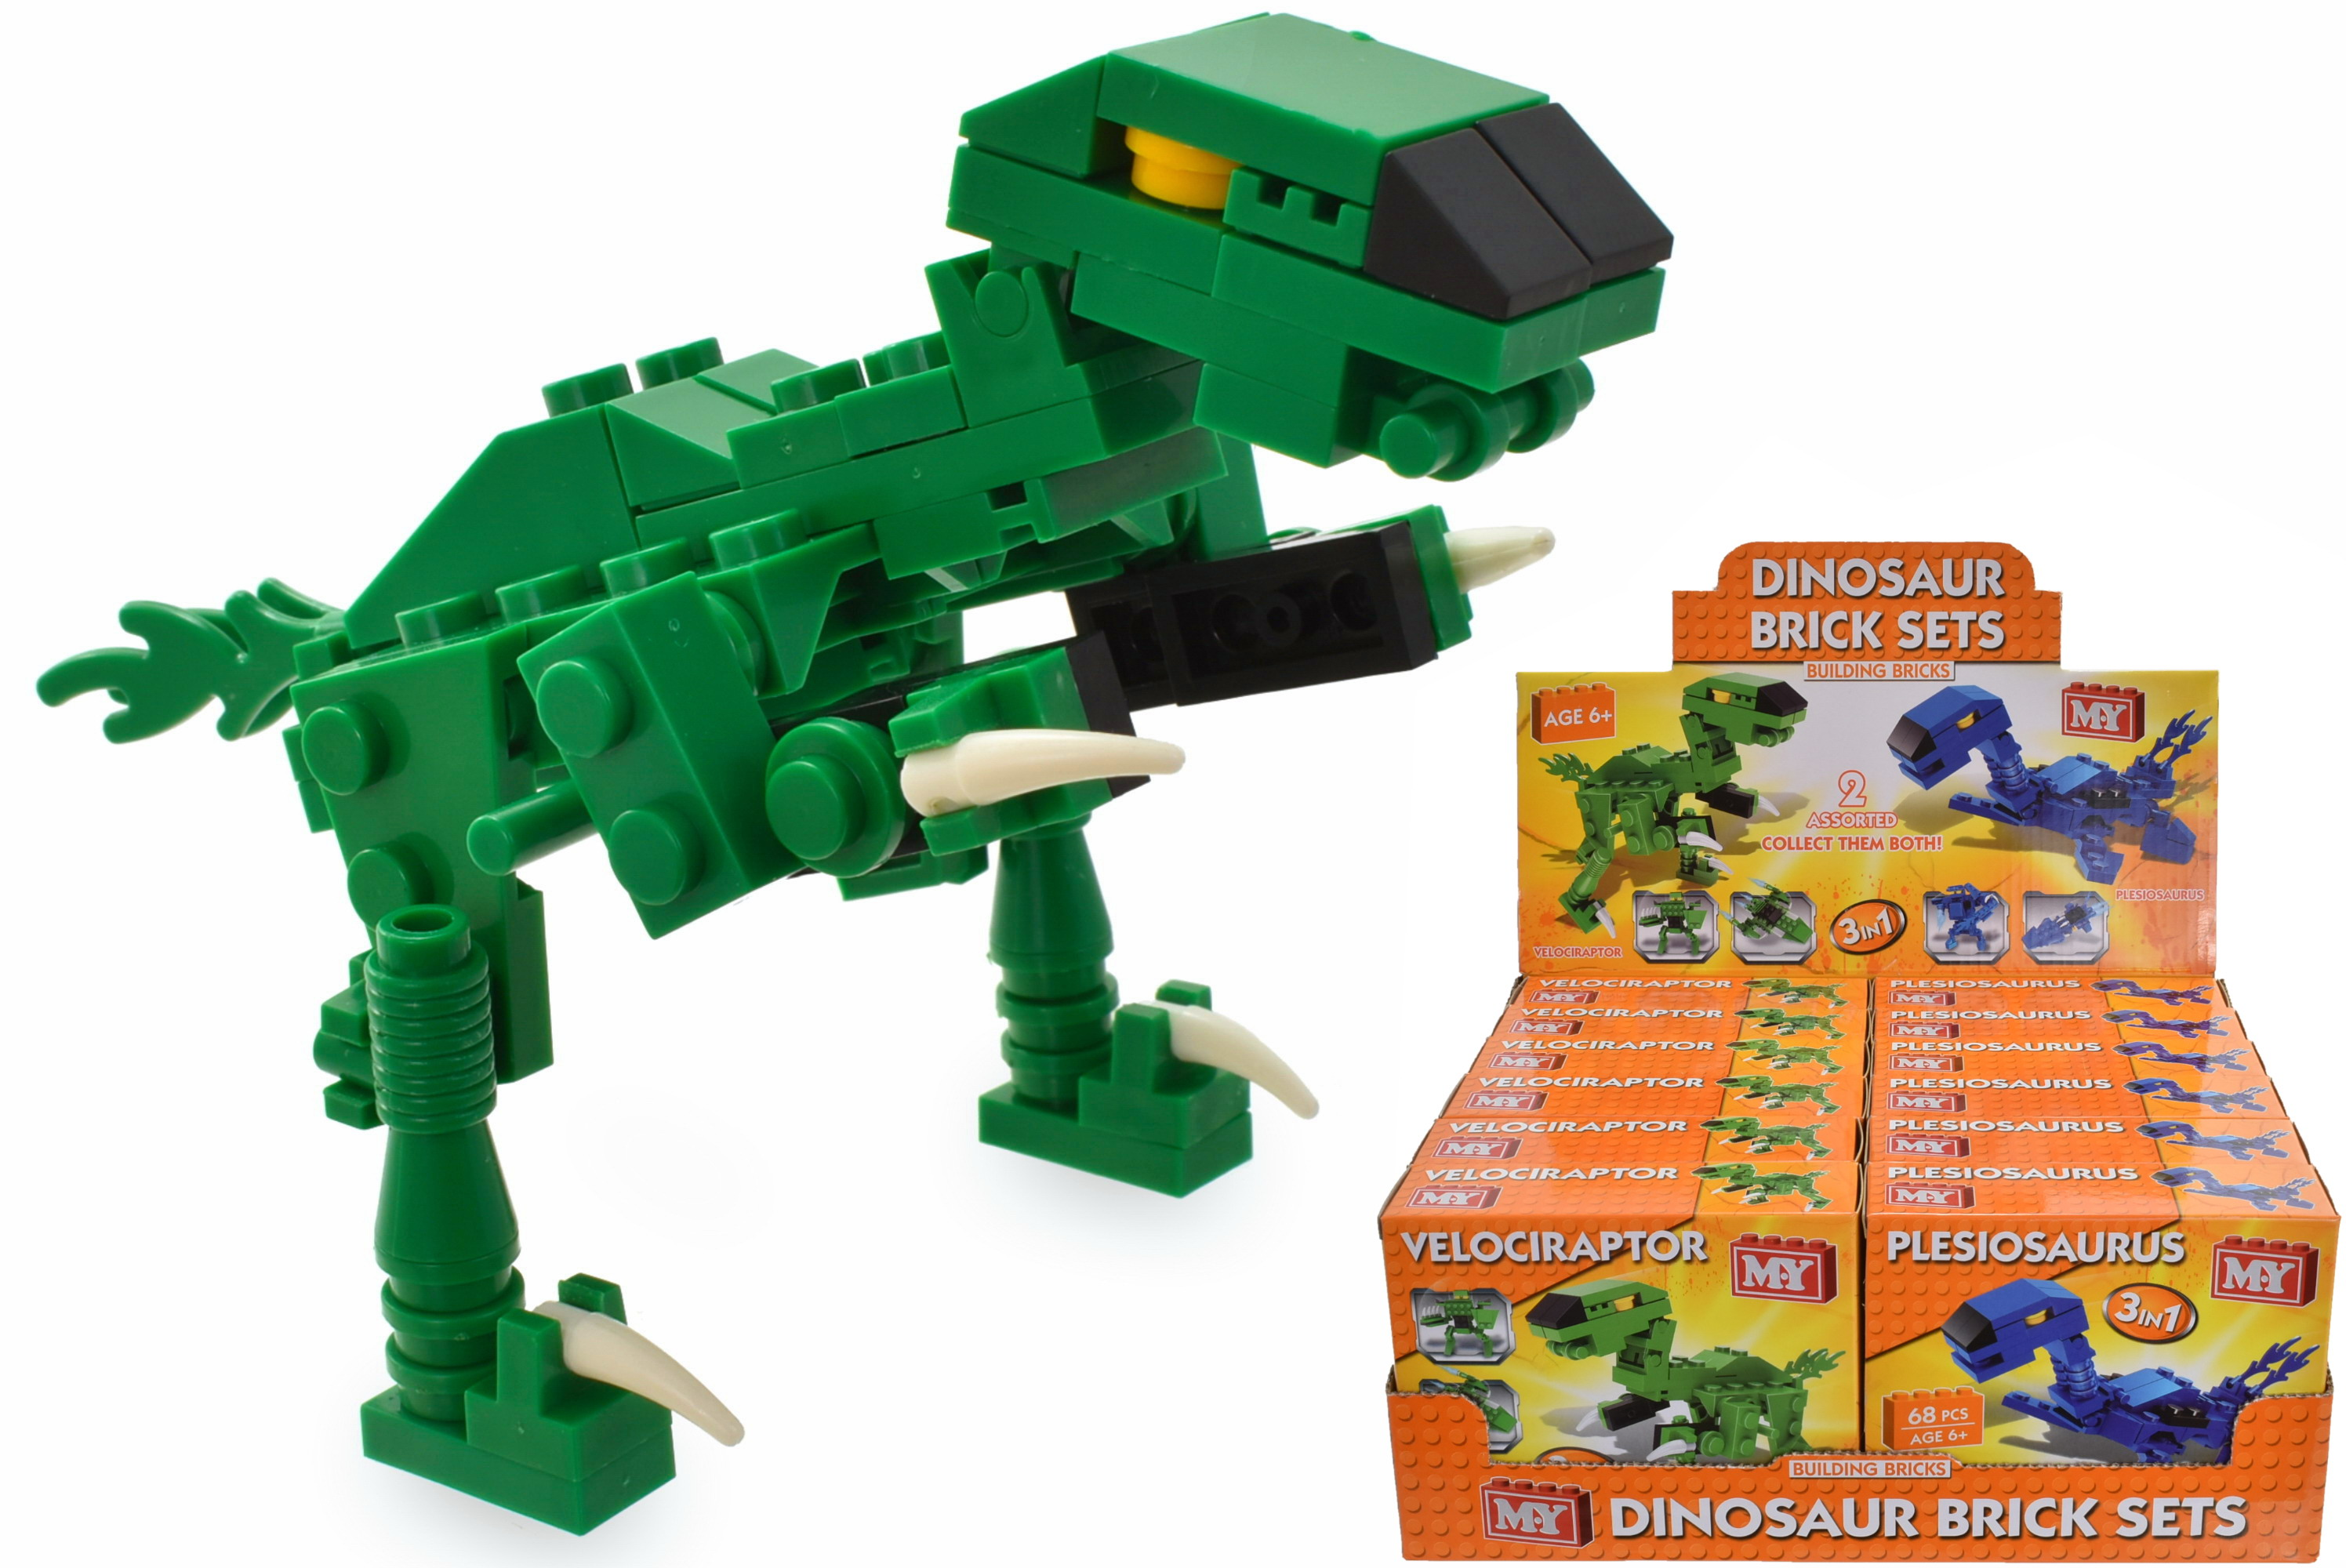 Dinosaur Brick Sets (2 Assorted) In Colour Box & D/Box